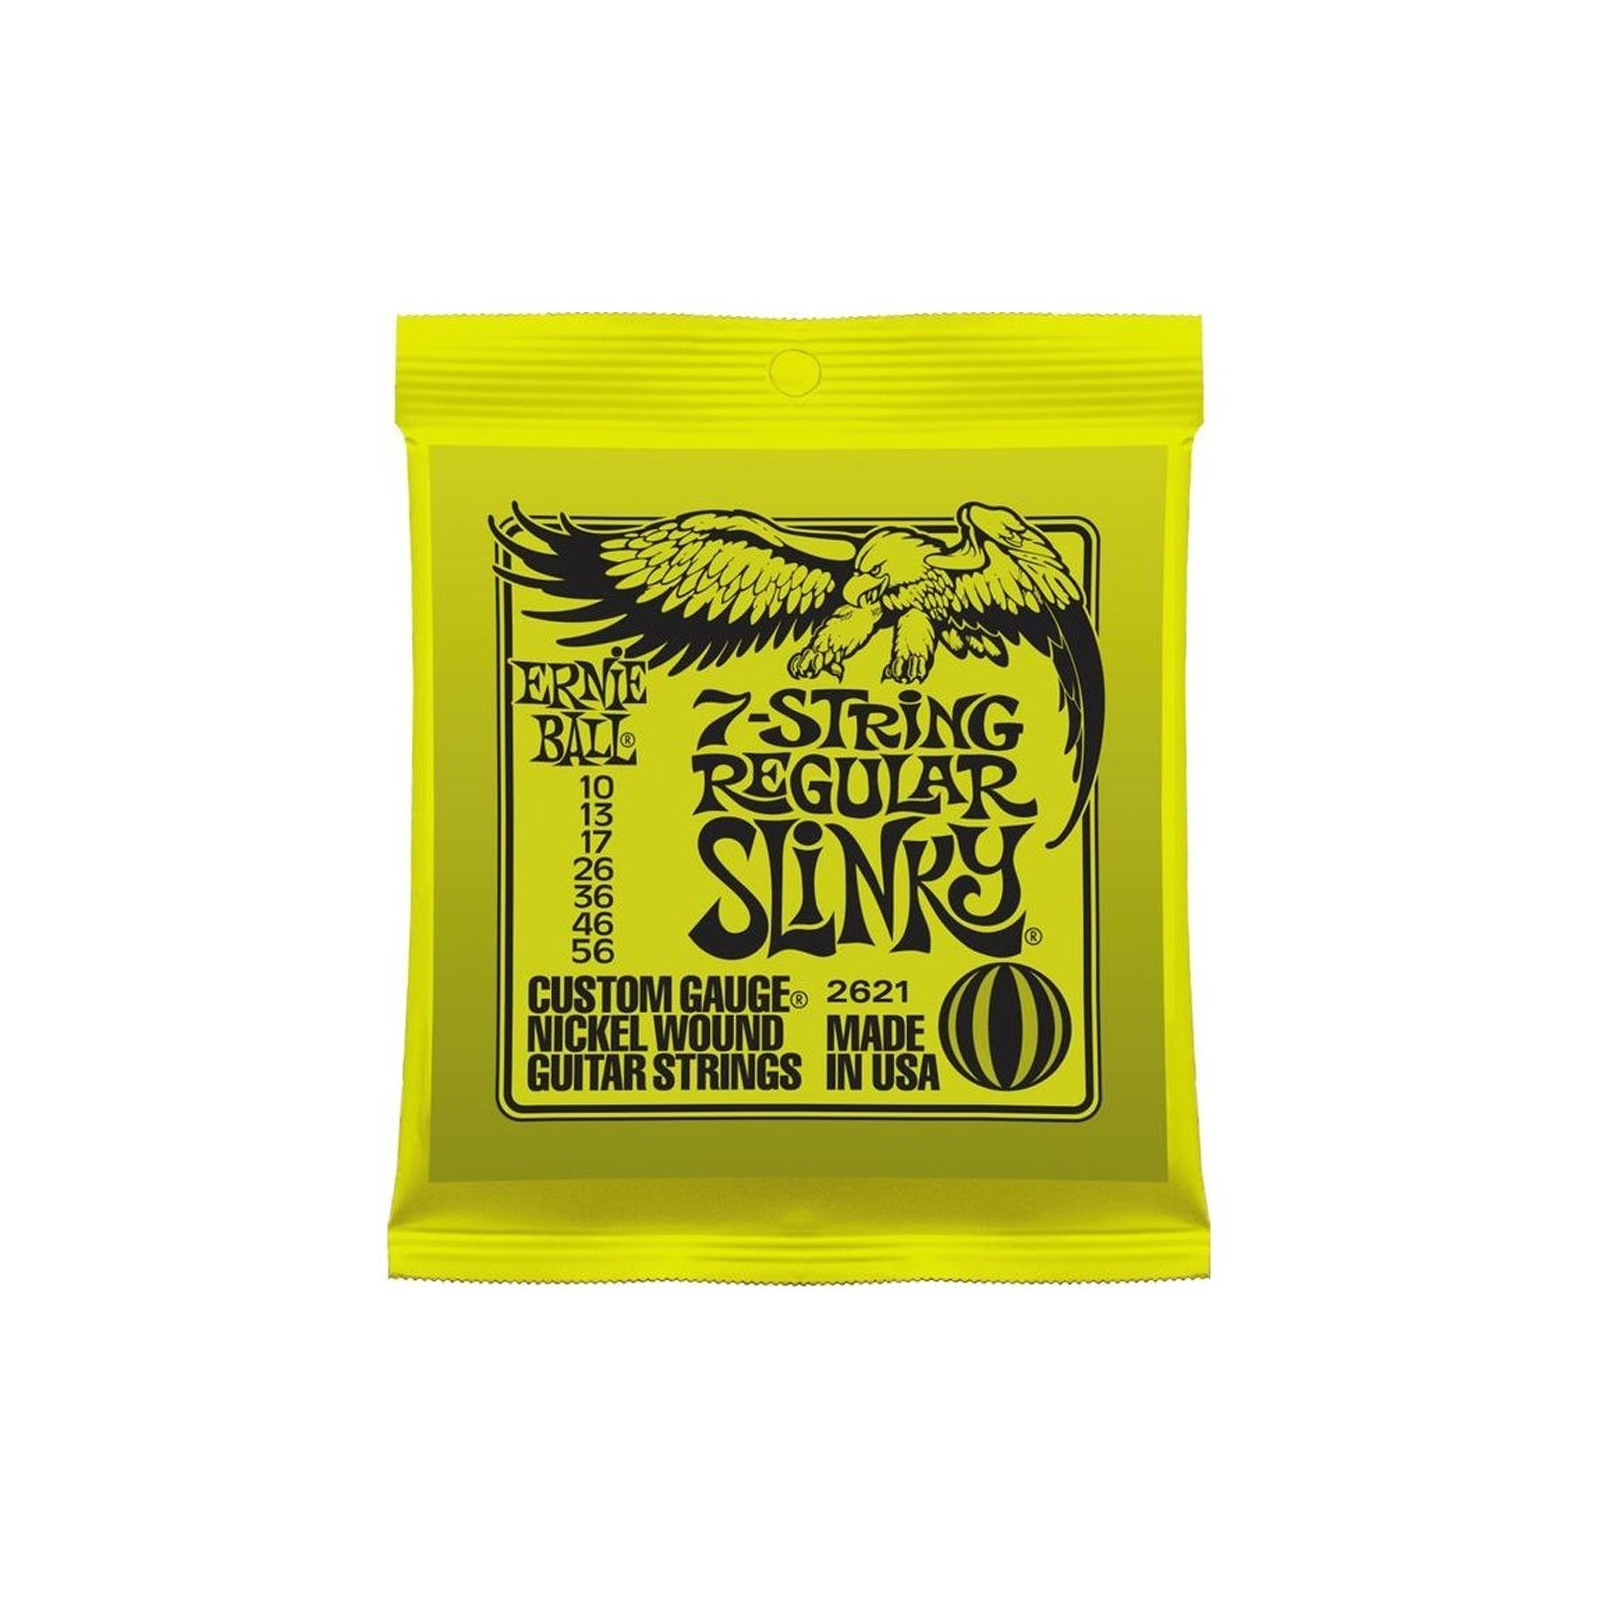 Ernie Ball 7 String Electric Guitar Strings Regular Slinky 10-56 E2621